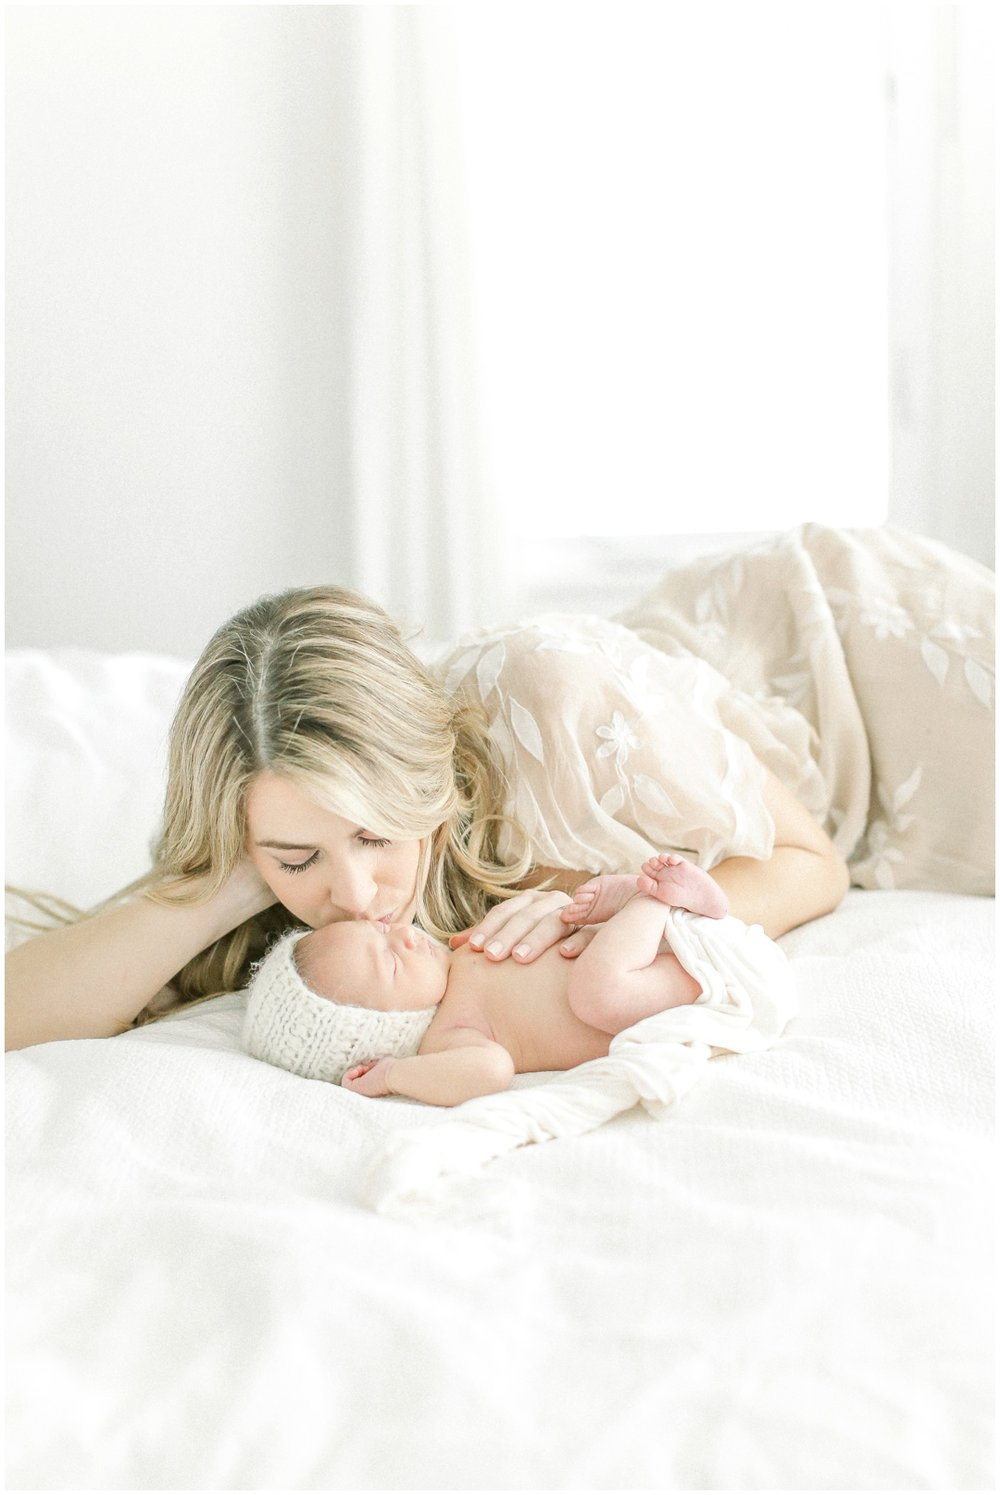 Newport_Beach_Newborn_Photographer_Newport_Beach_Maternity_Photographer_Orange_County_Family_Photographer_Cori_Kleckner_Photography_Huntington_Beach_Photographer__Erin_Dooney_Brandon_Dooney__Avery_Dooney_Family_Photos__2806.jpg